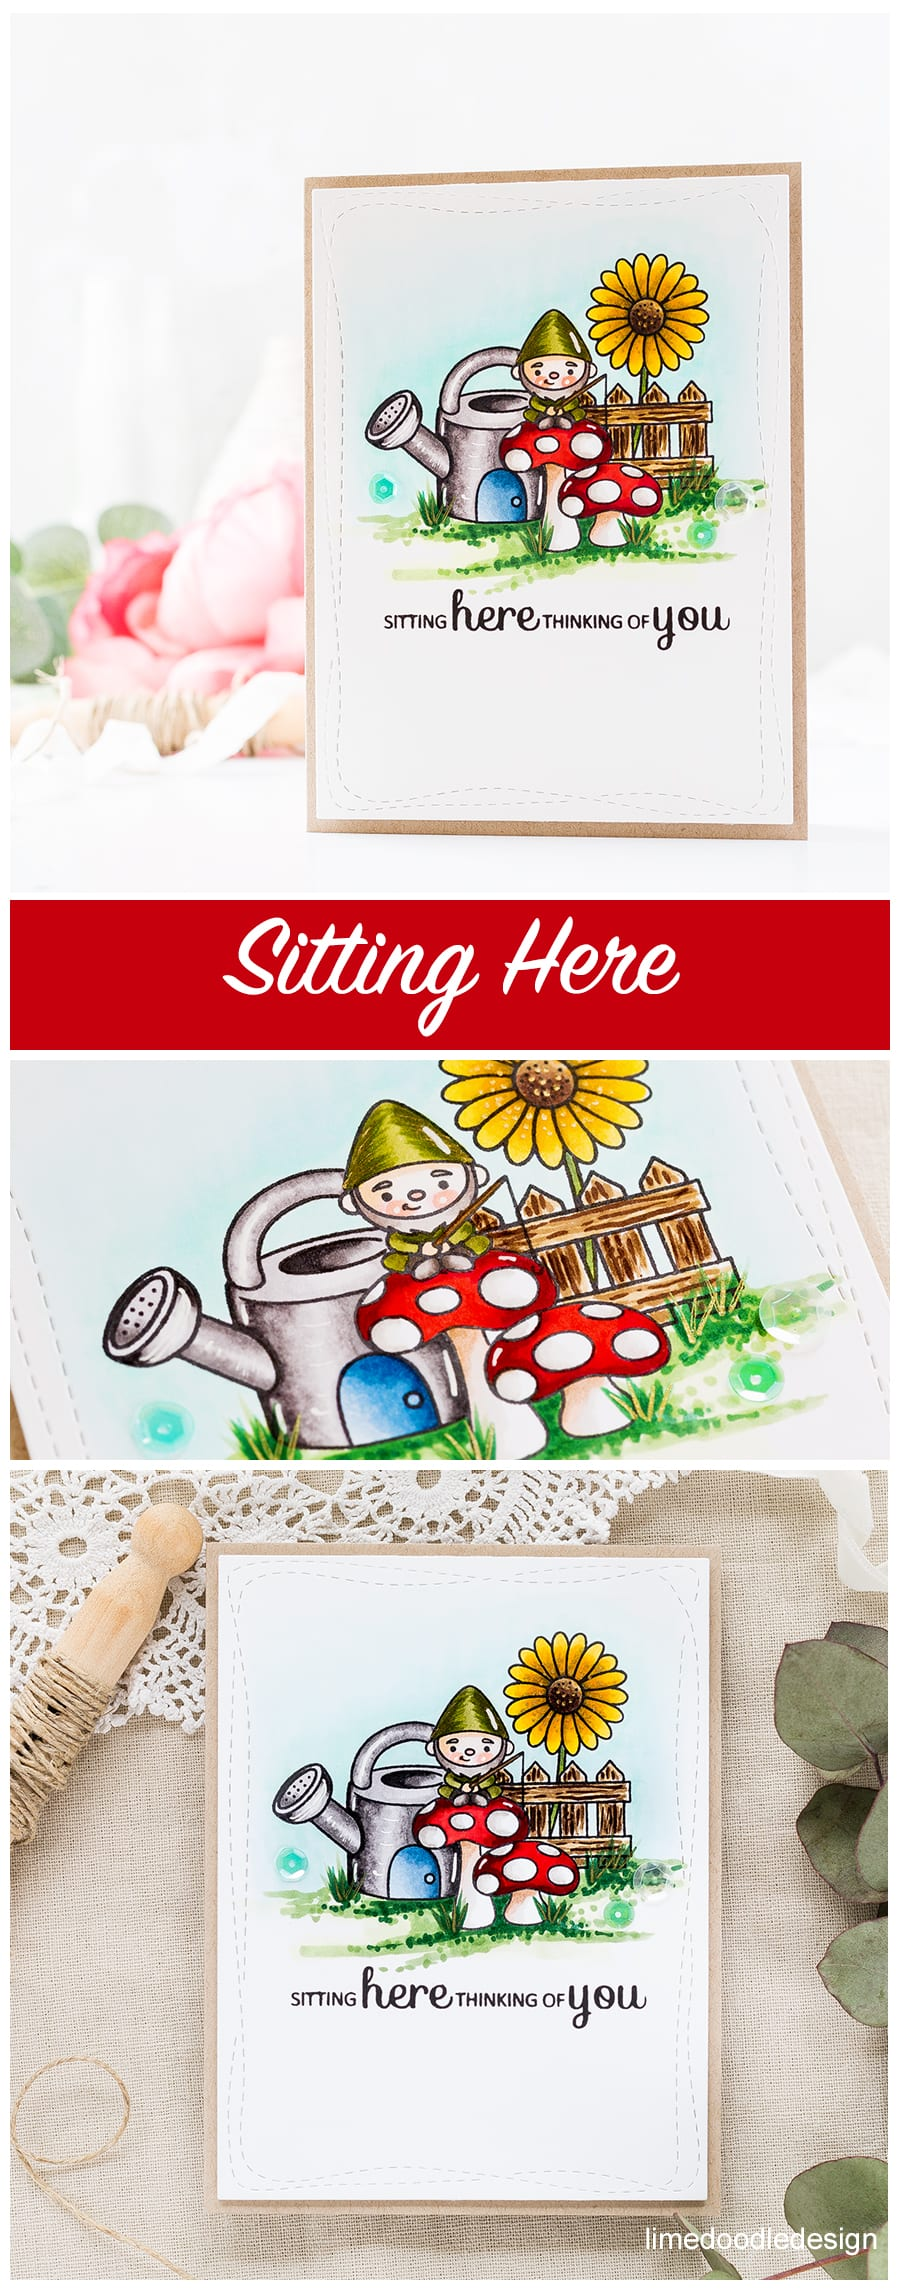 Sitting here thinking of you Garden Gnomes handmade card by Debby Hughes. Find out more about this card by clicking on the following link https://limedoodledesign.com/2017/06/sitting-here-thinking-of-you/